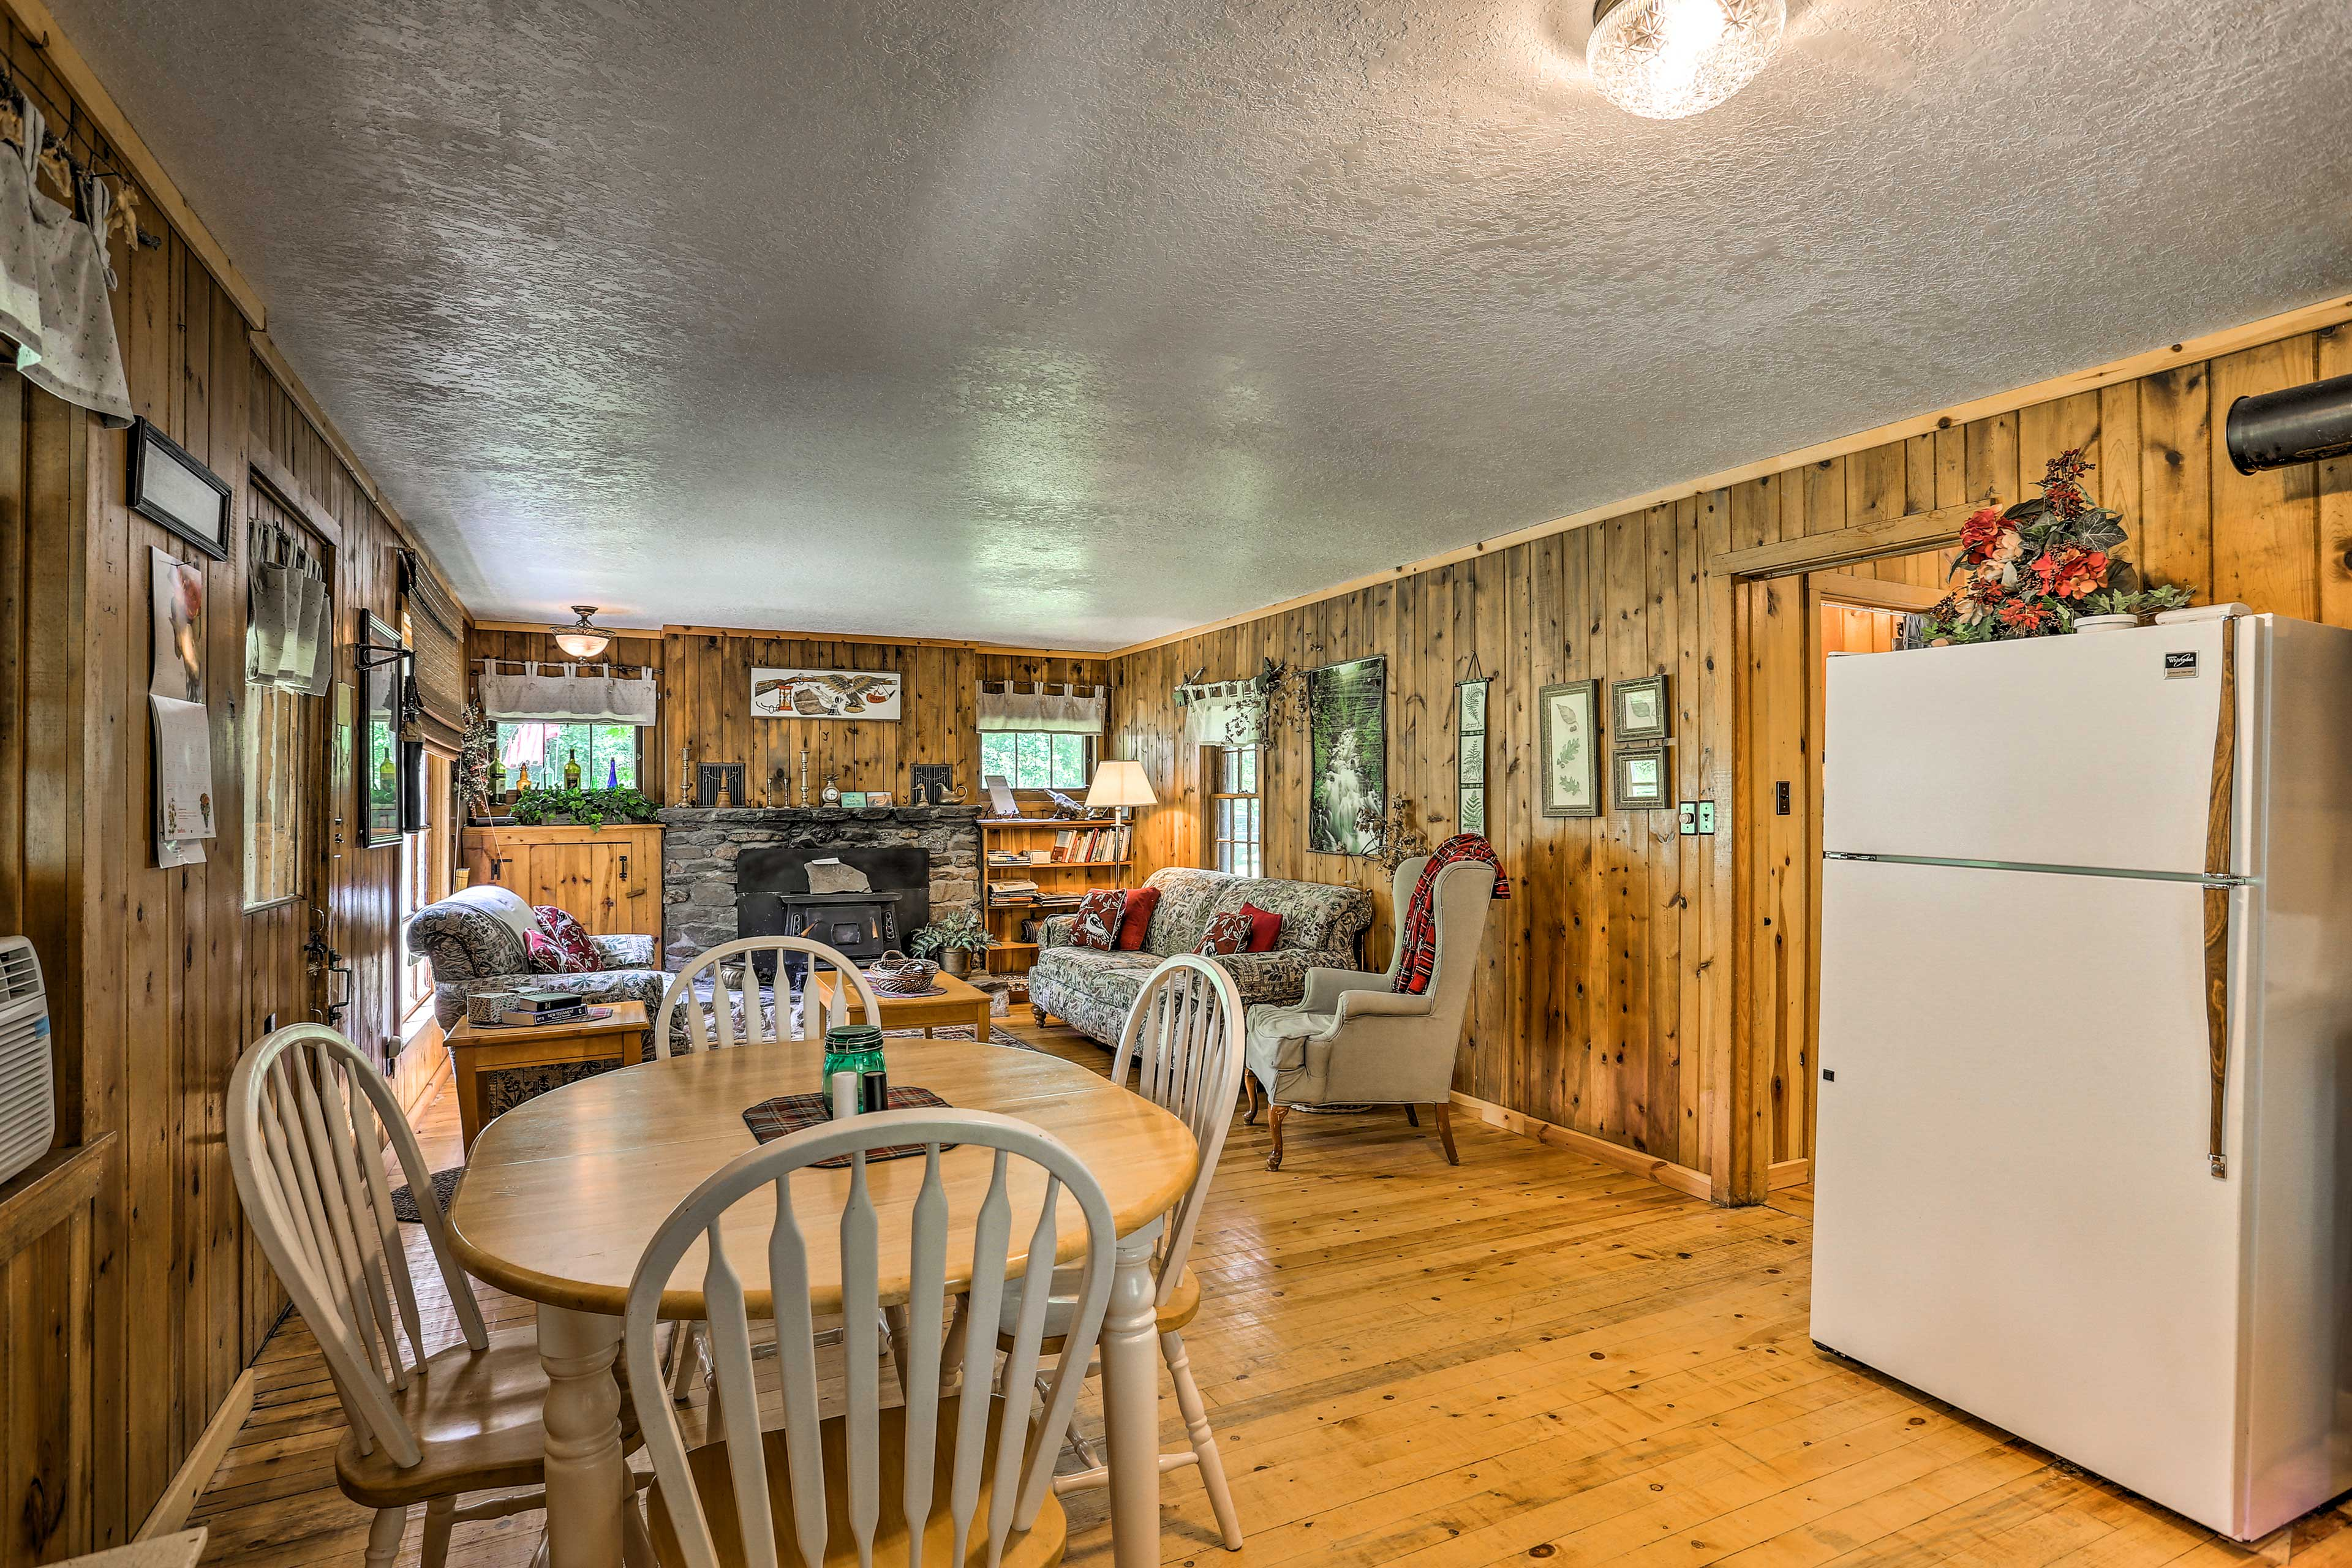 This property accommodates up to 8 guests.